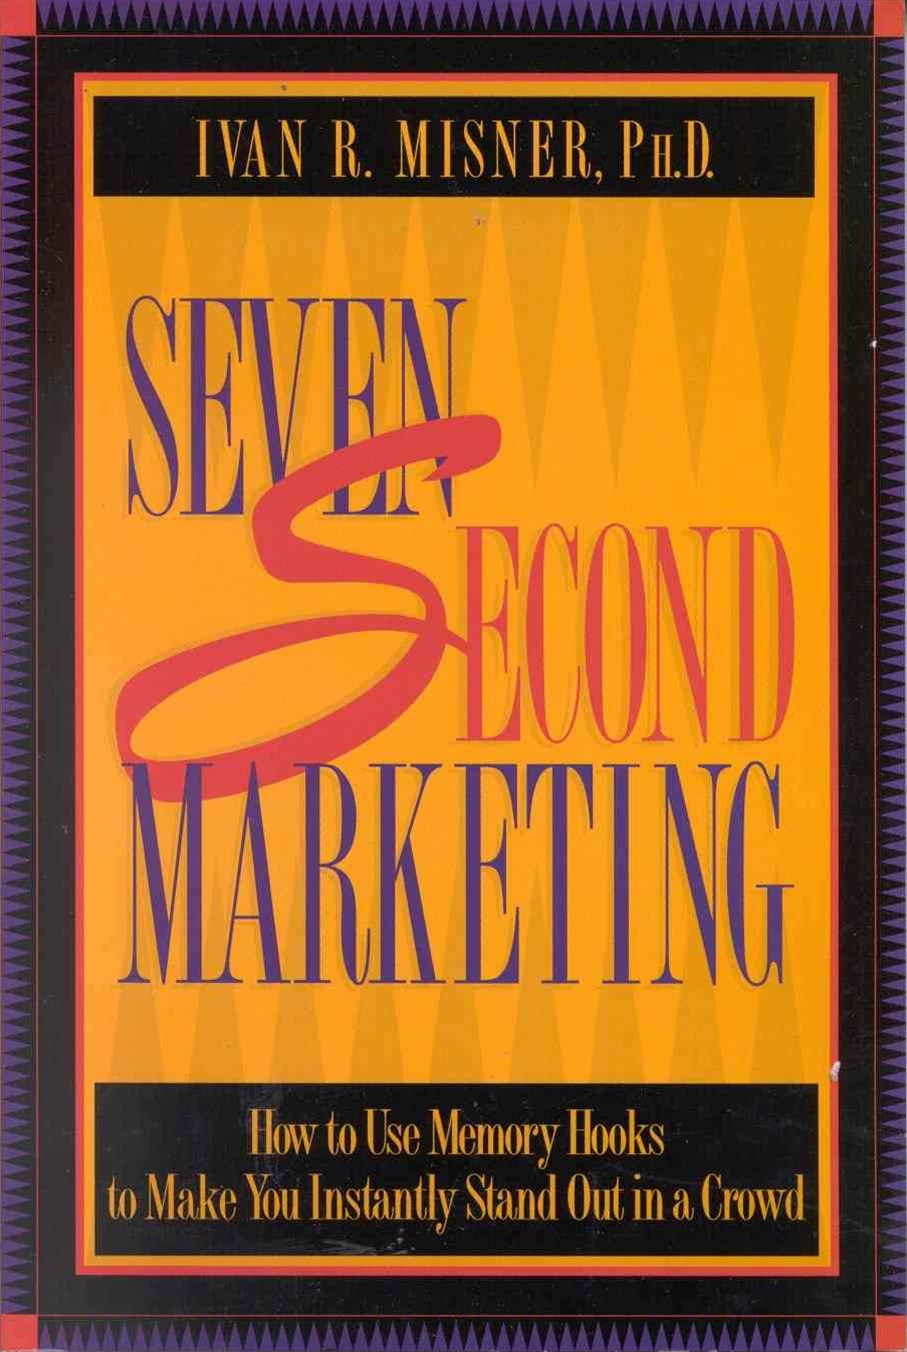 Seven Second Marketing